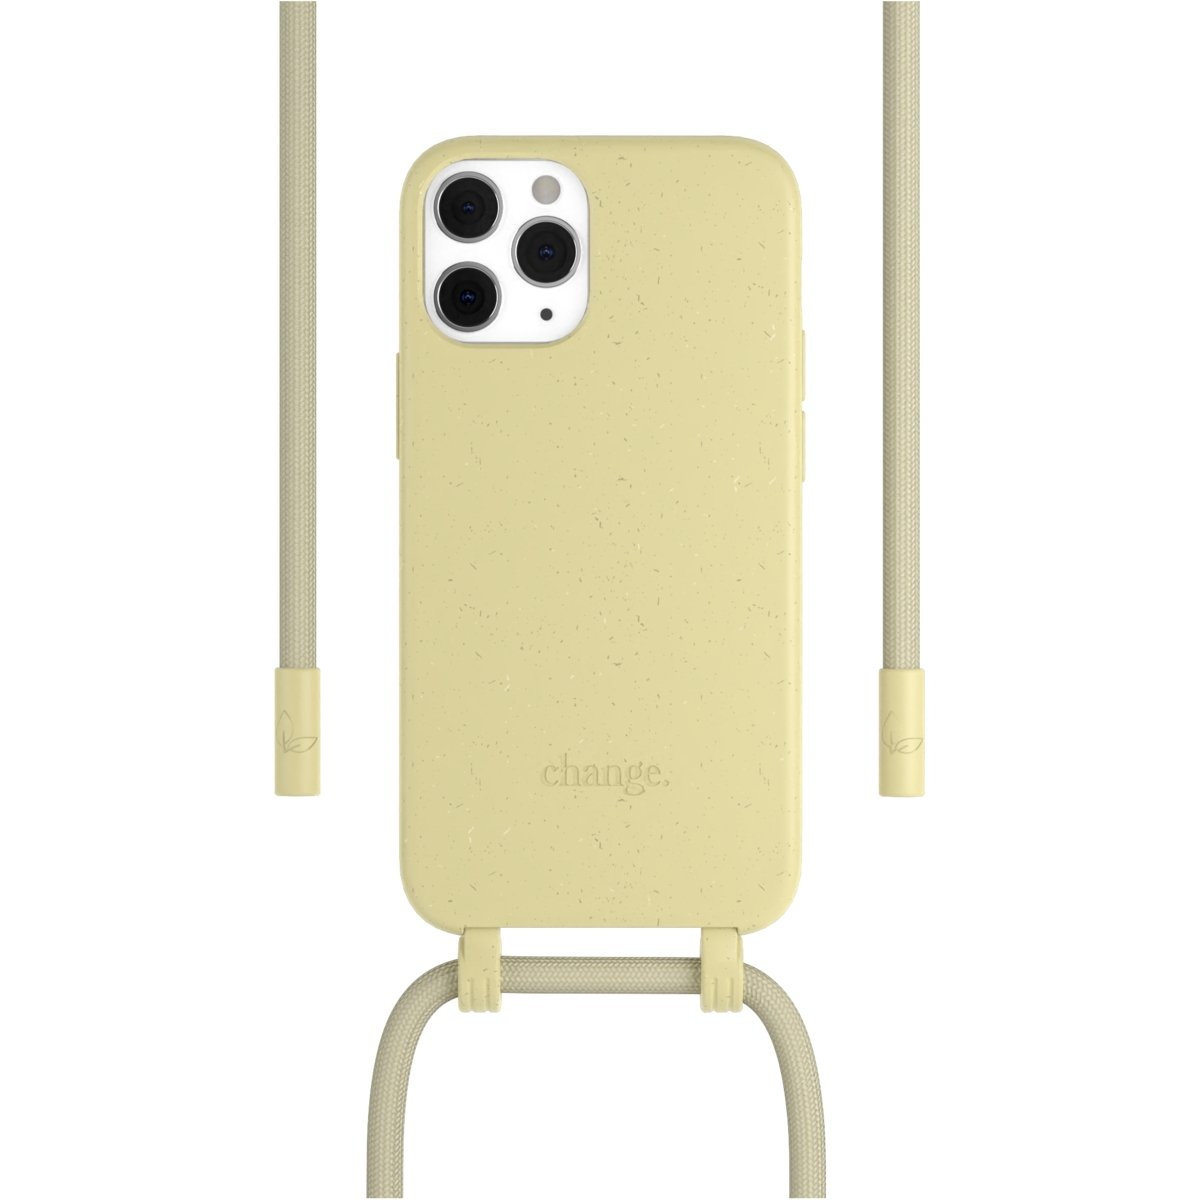 Woodcessories Change Case AM iPhone 12 Pro Max - yellow